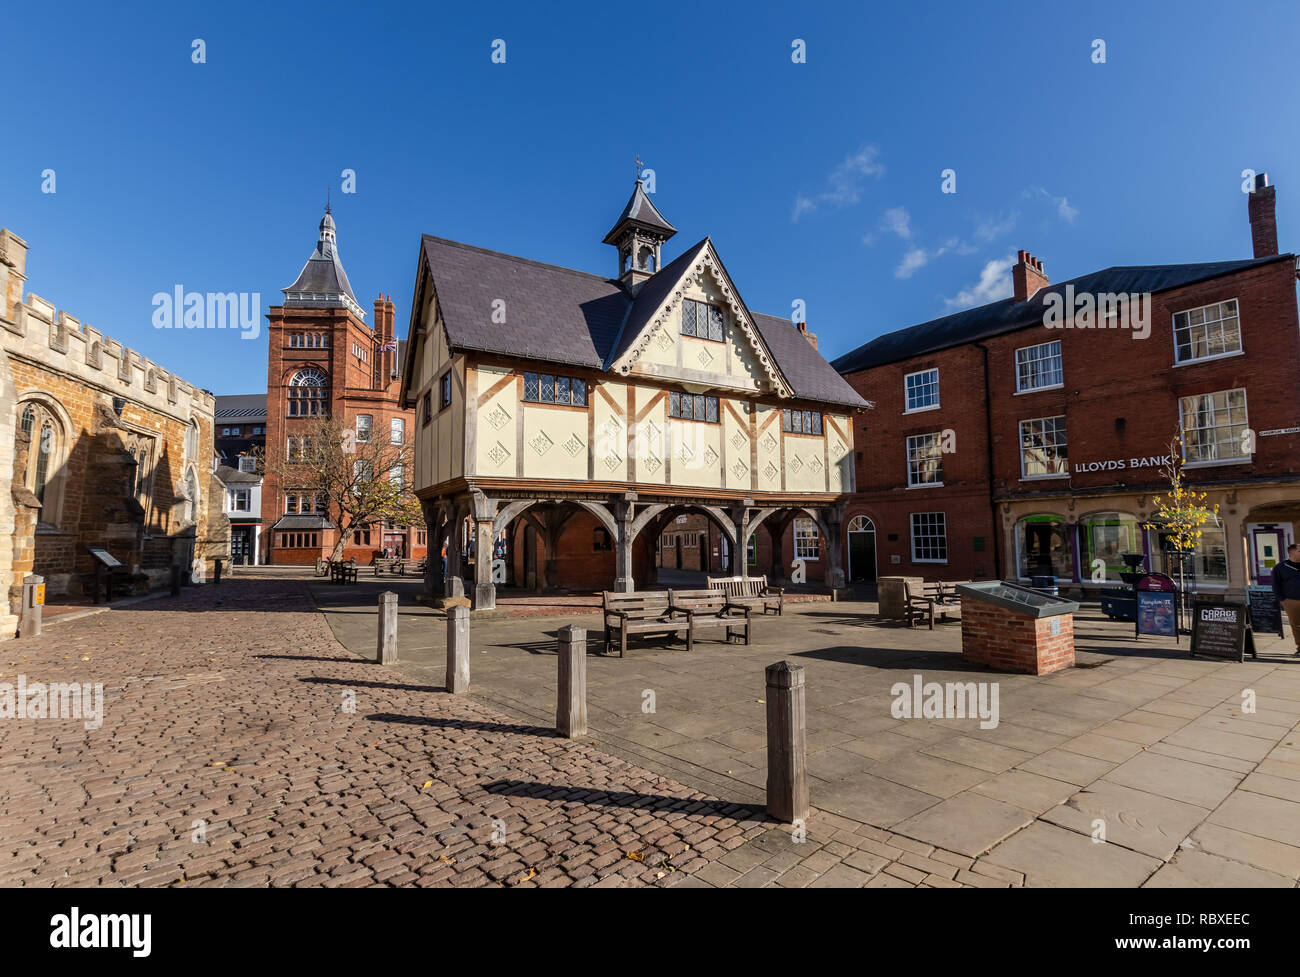 The Old Grammar School, Church Square, Market Harborough, Leicestershire, England, United Kingdom - Stock Image